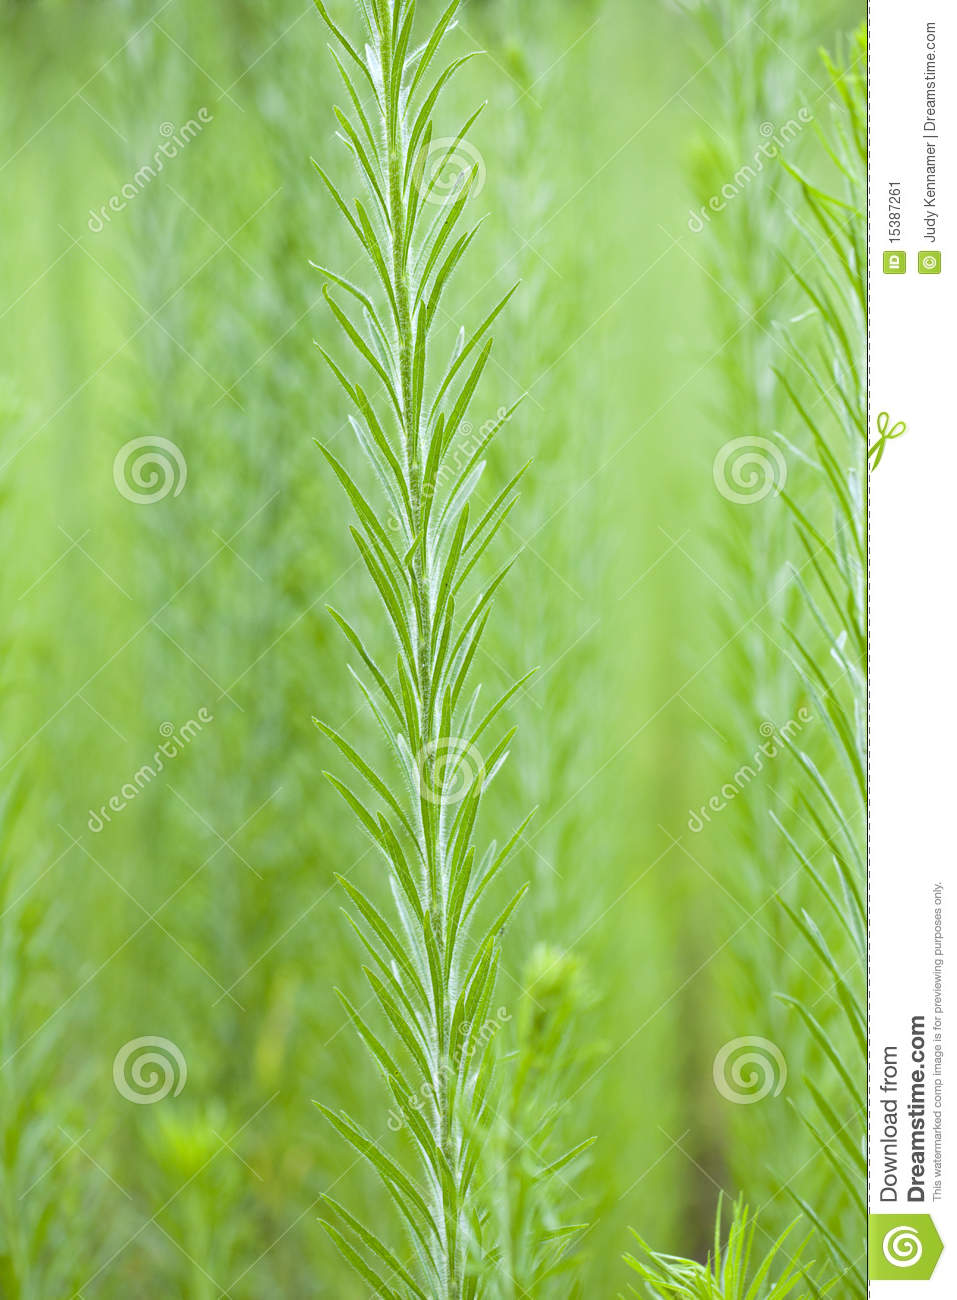 Tall Weeds In With Soft Focus Background Stock Image